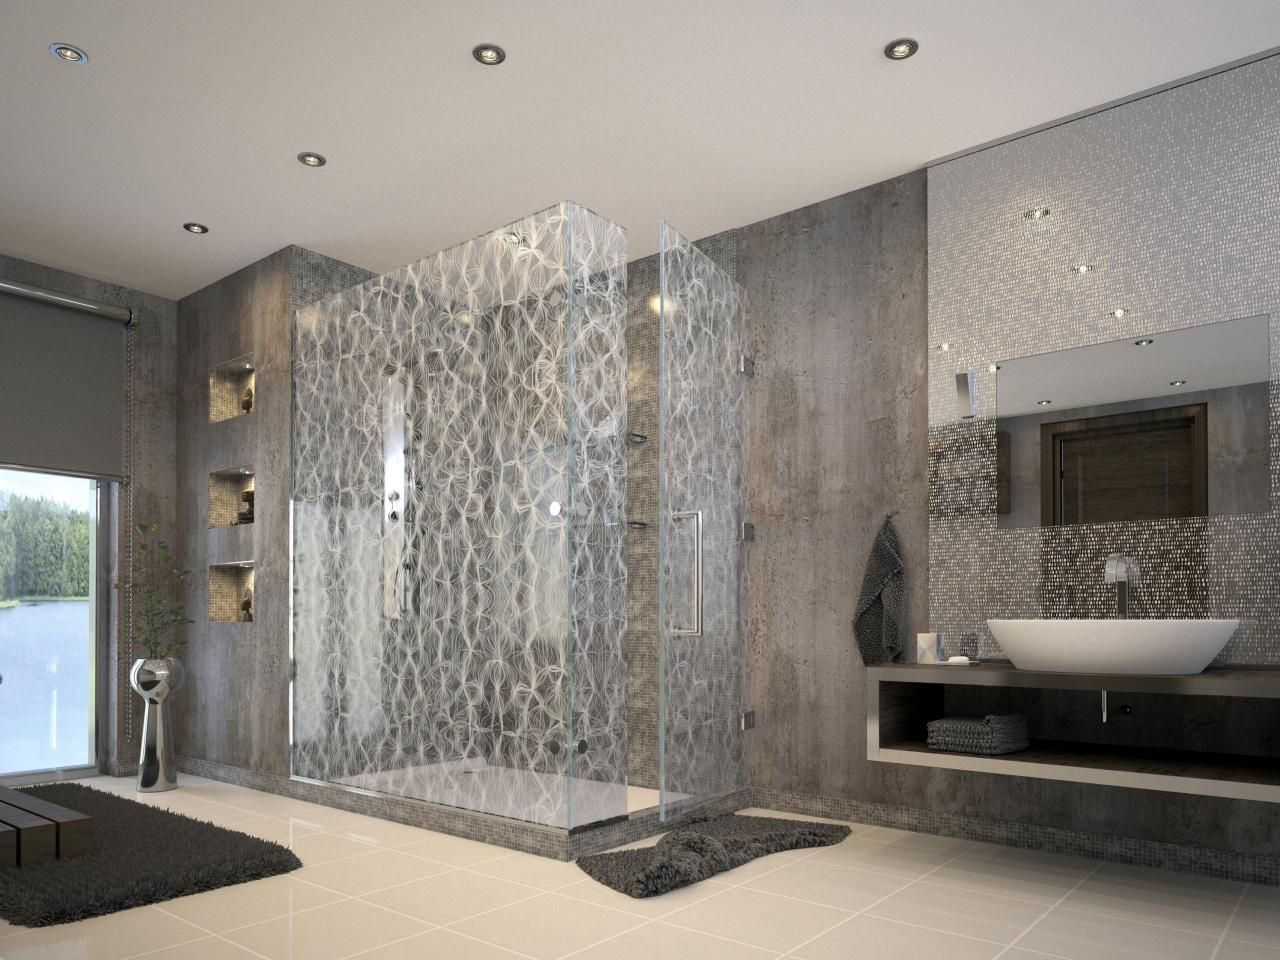 Great Luxurious Showers | Bathroom Ideas U0026 Design With Vanities, Tile, Cabinets,  Sinks |